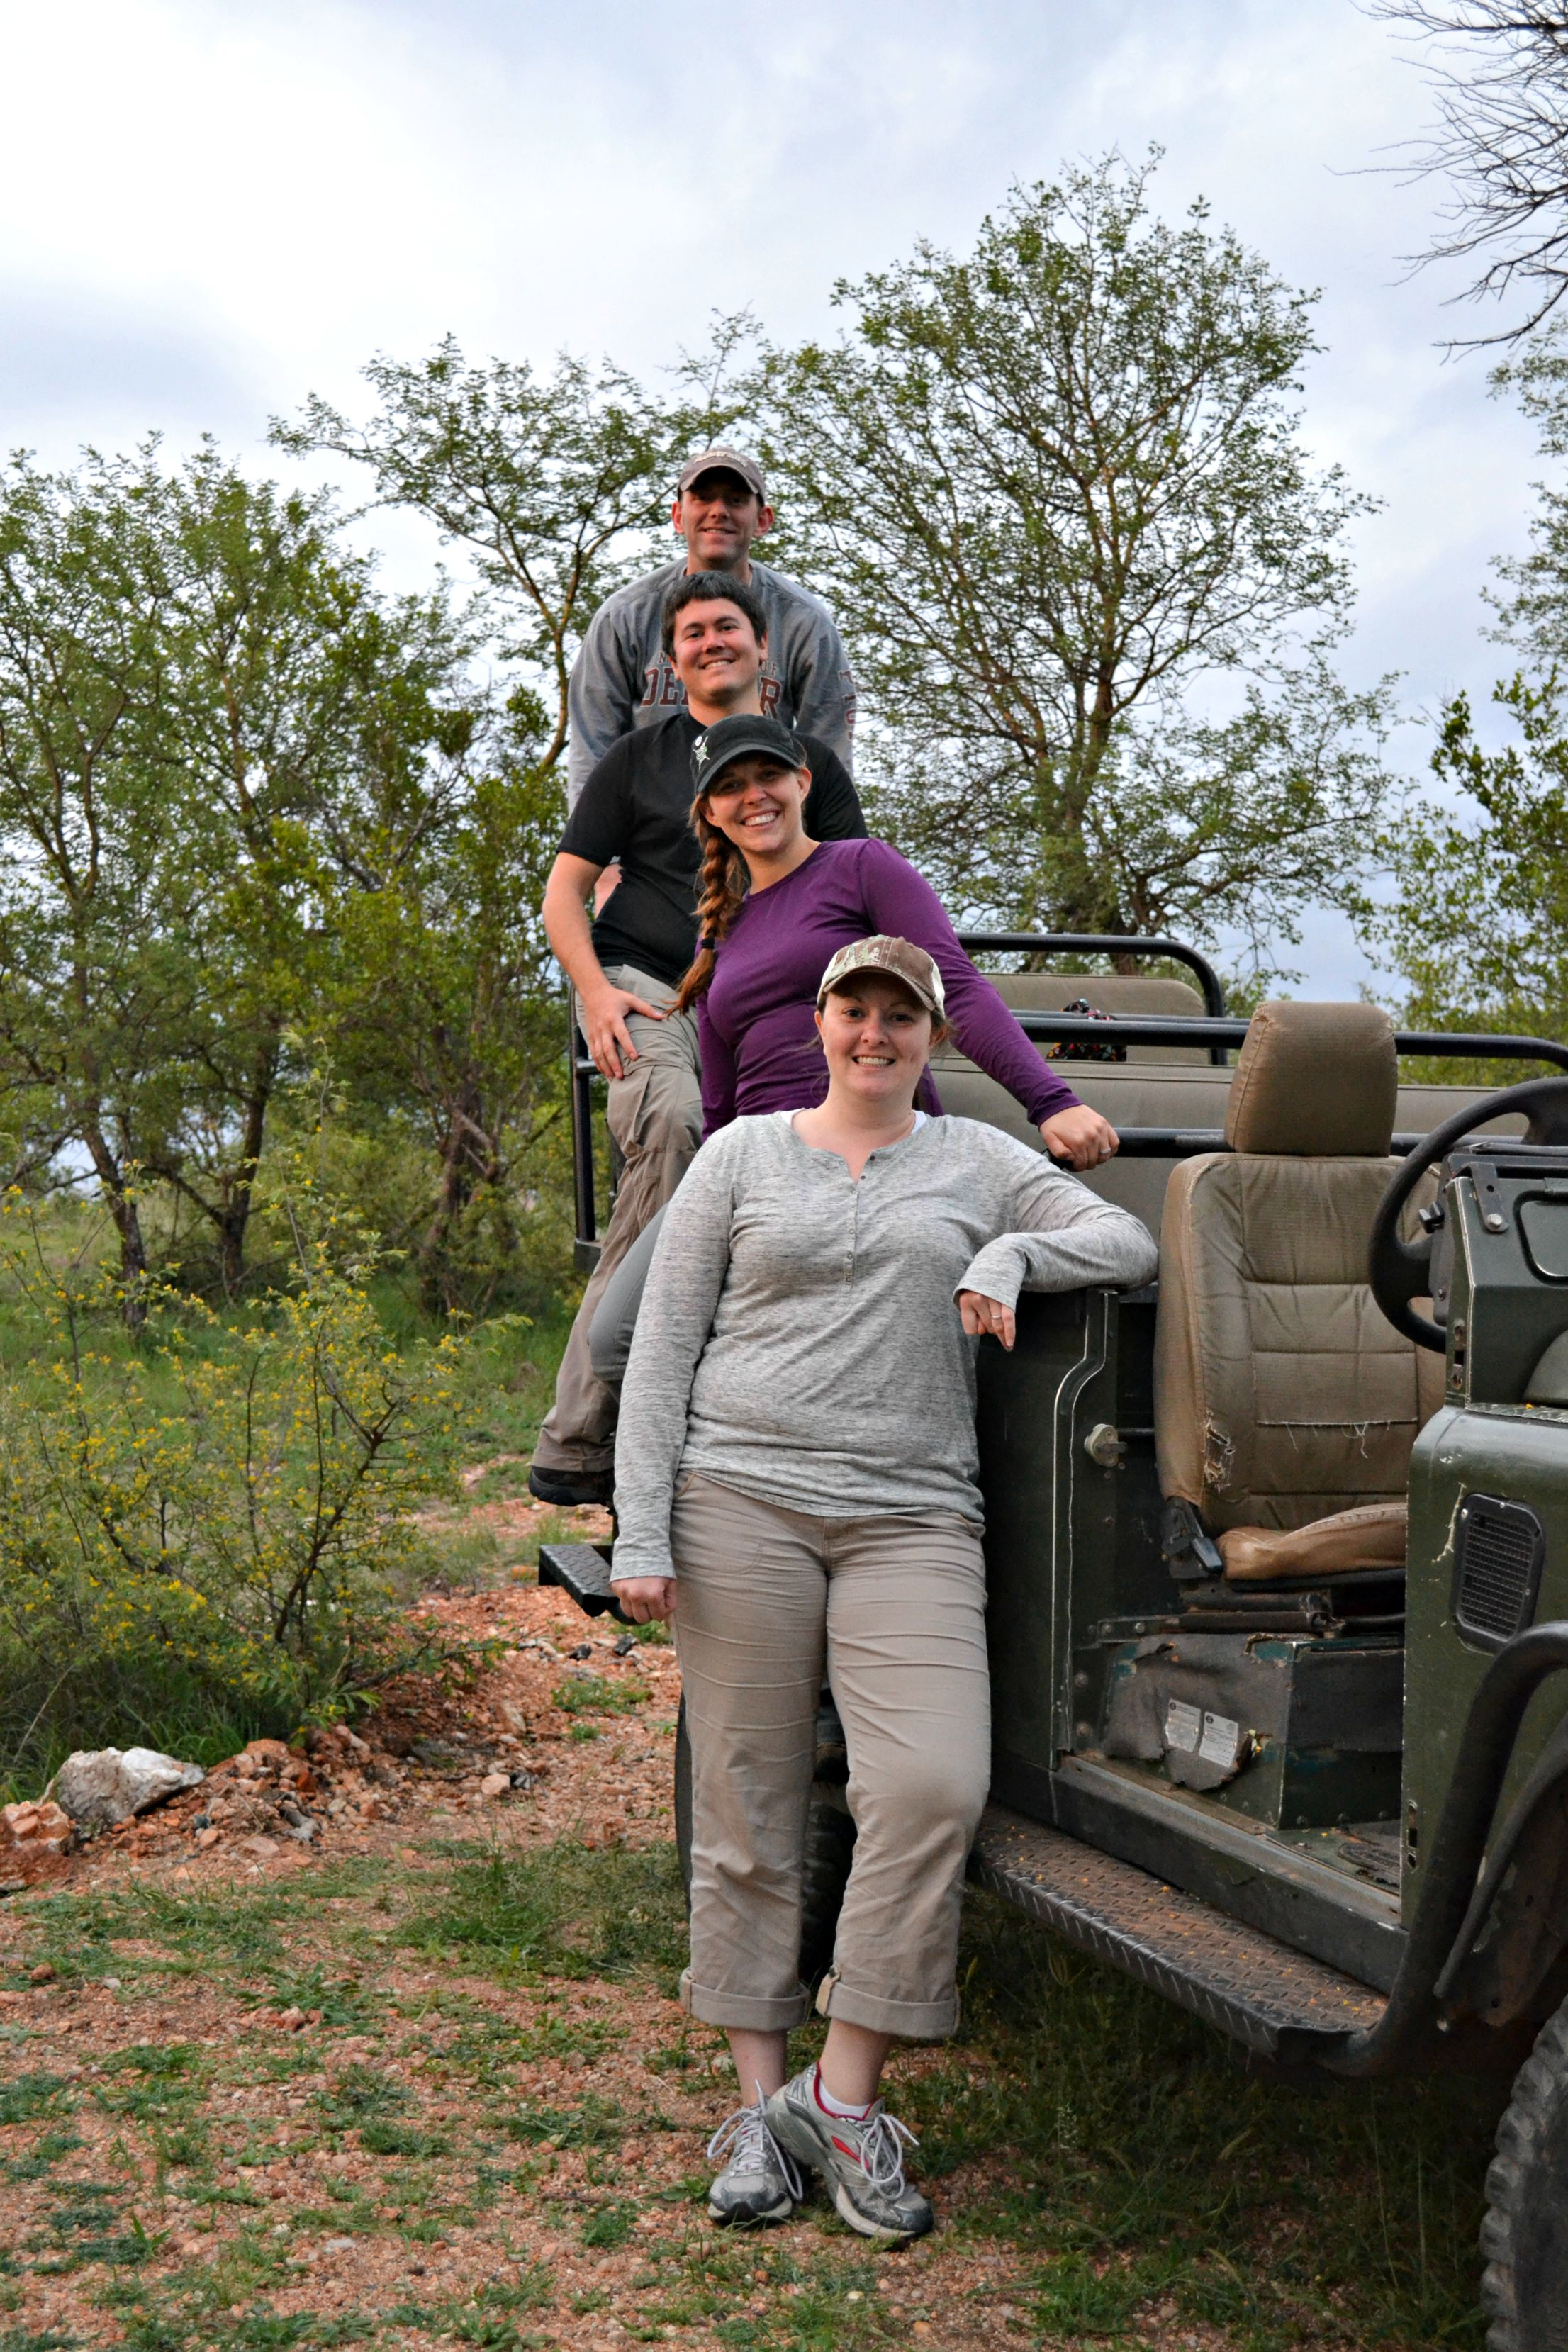 On a Safari in South Africa, one of our many trips with our friends